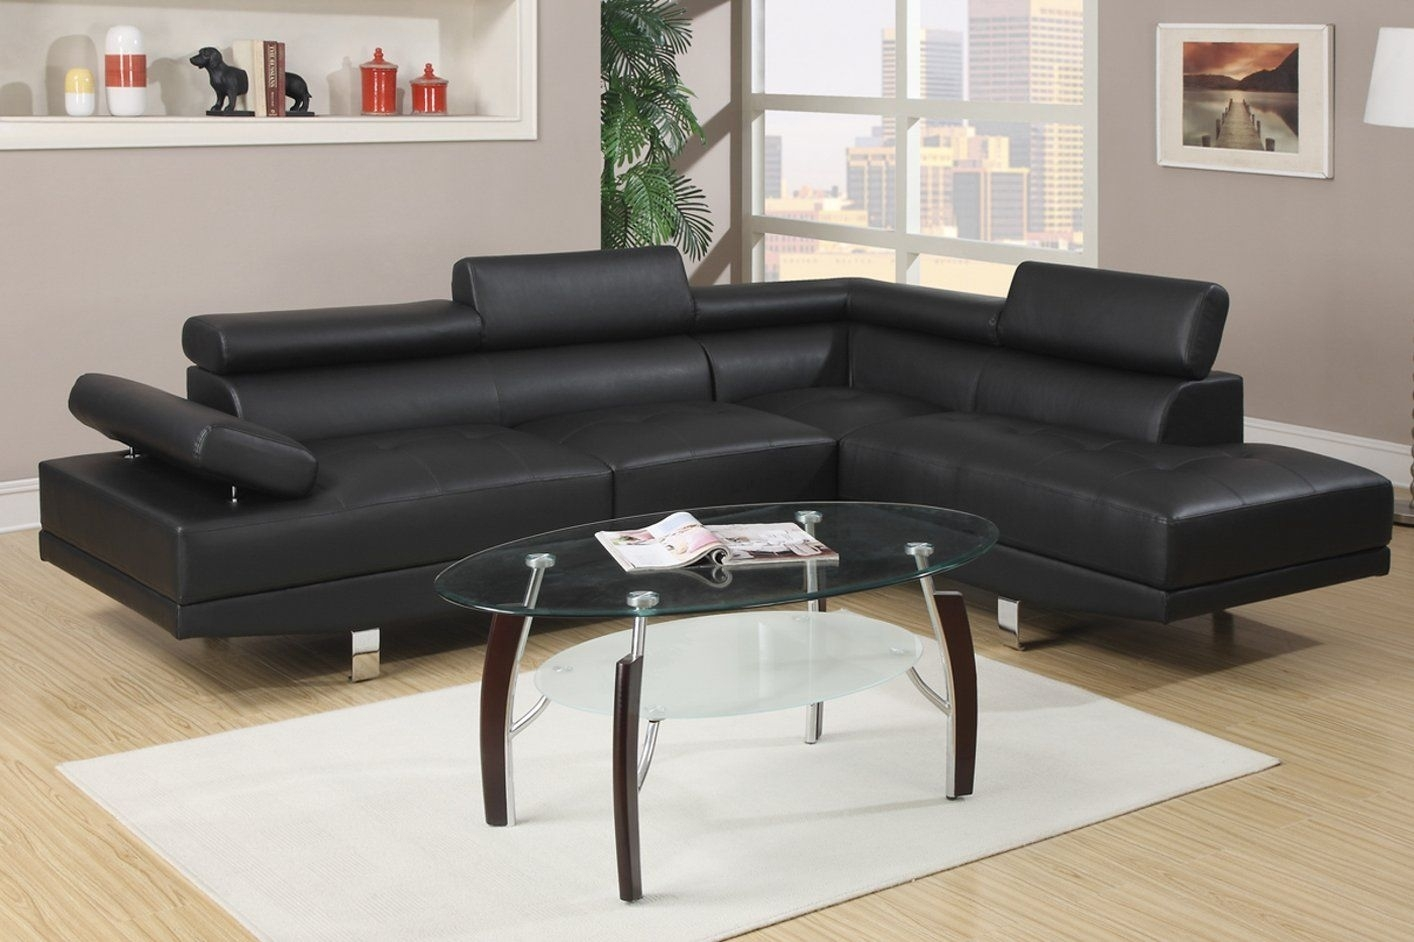 Stunning Sectional Sofa Design Black Leather With Best For And Darie Pertaining To Black Sectional Sofas (Image 9 of 10)